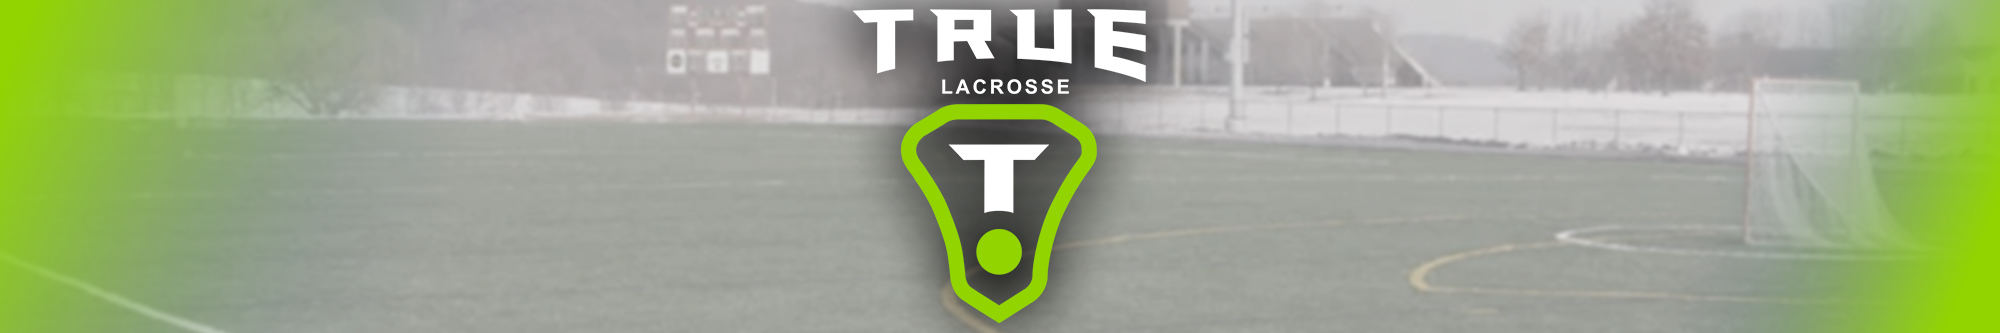 True Box Lacrosse Equipment Store